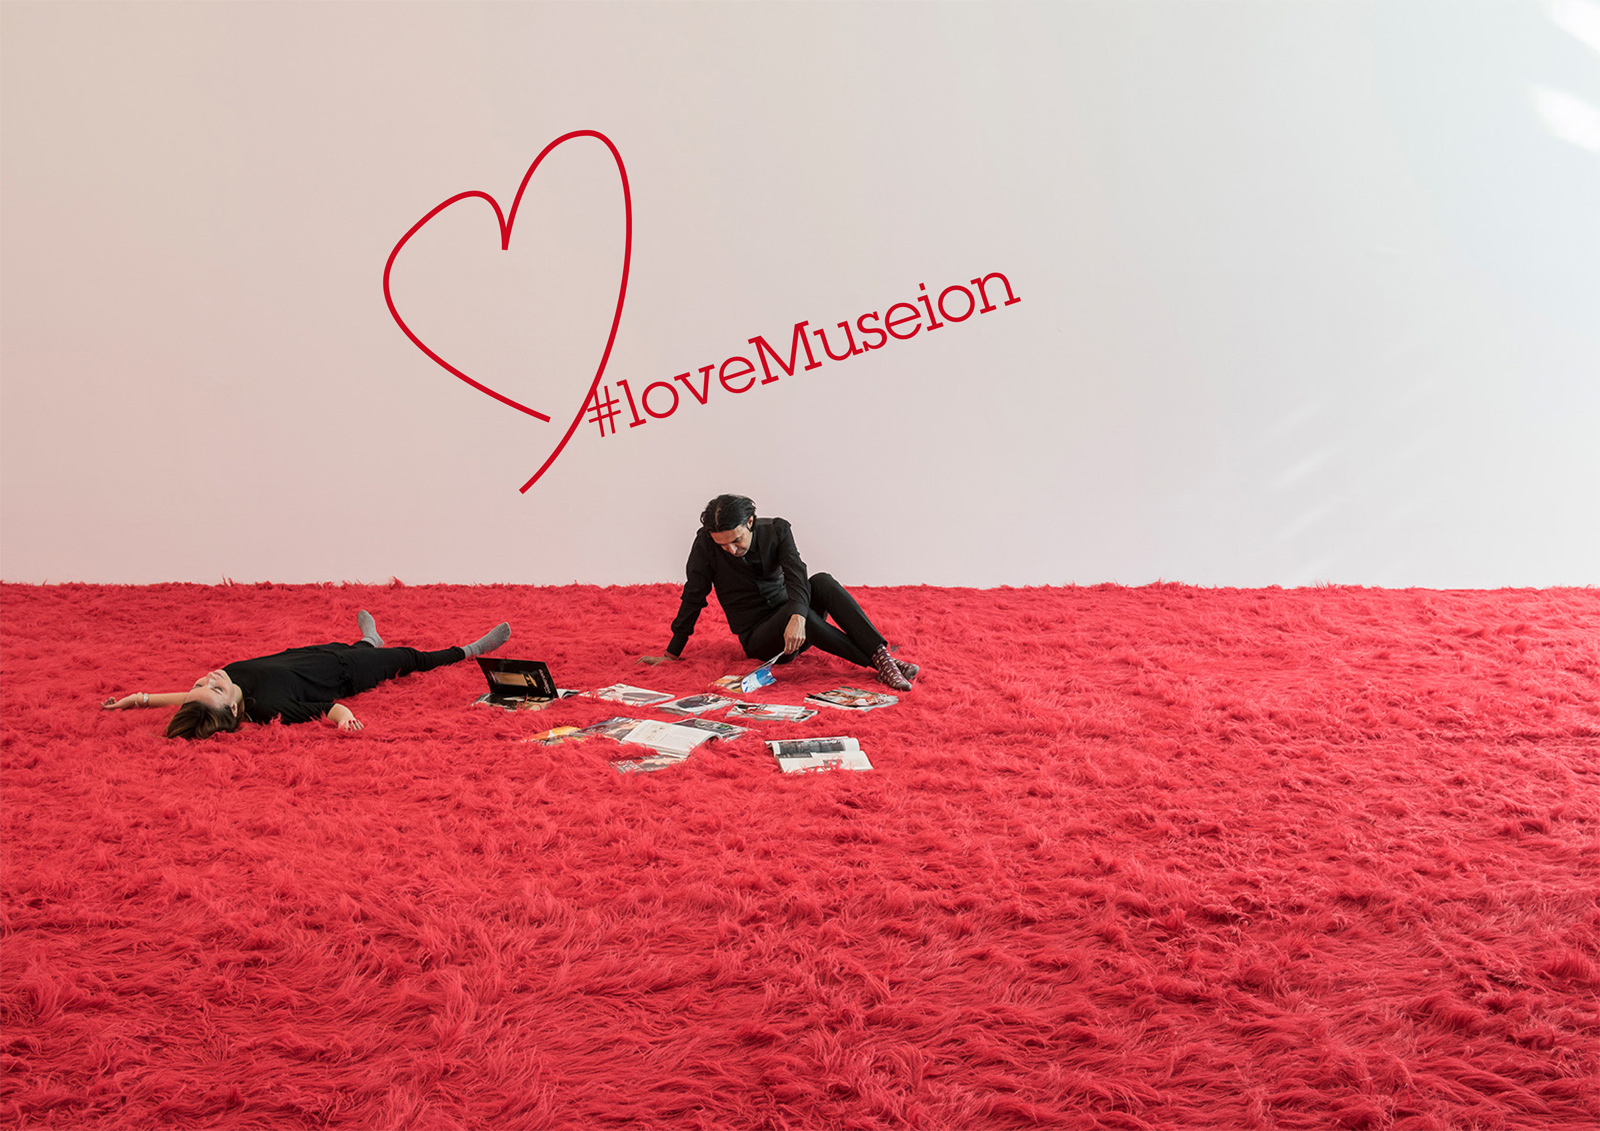 #loveMuseion